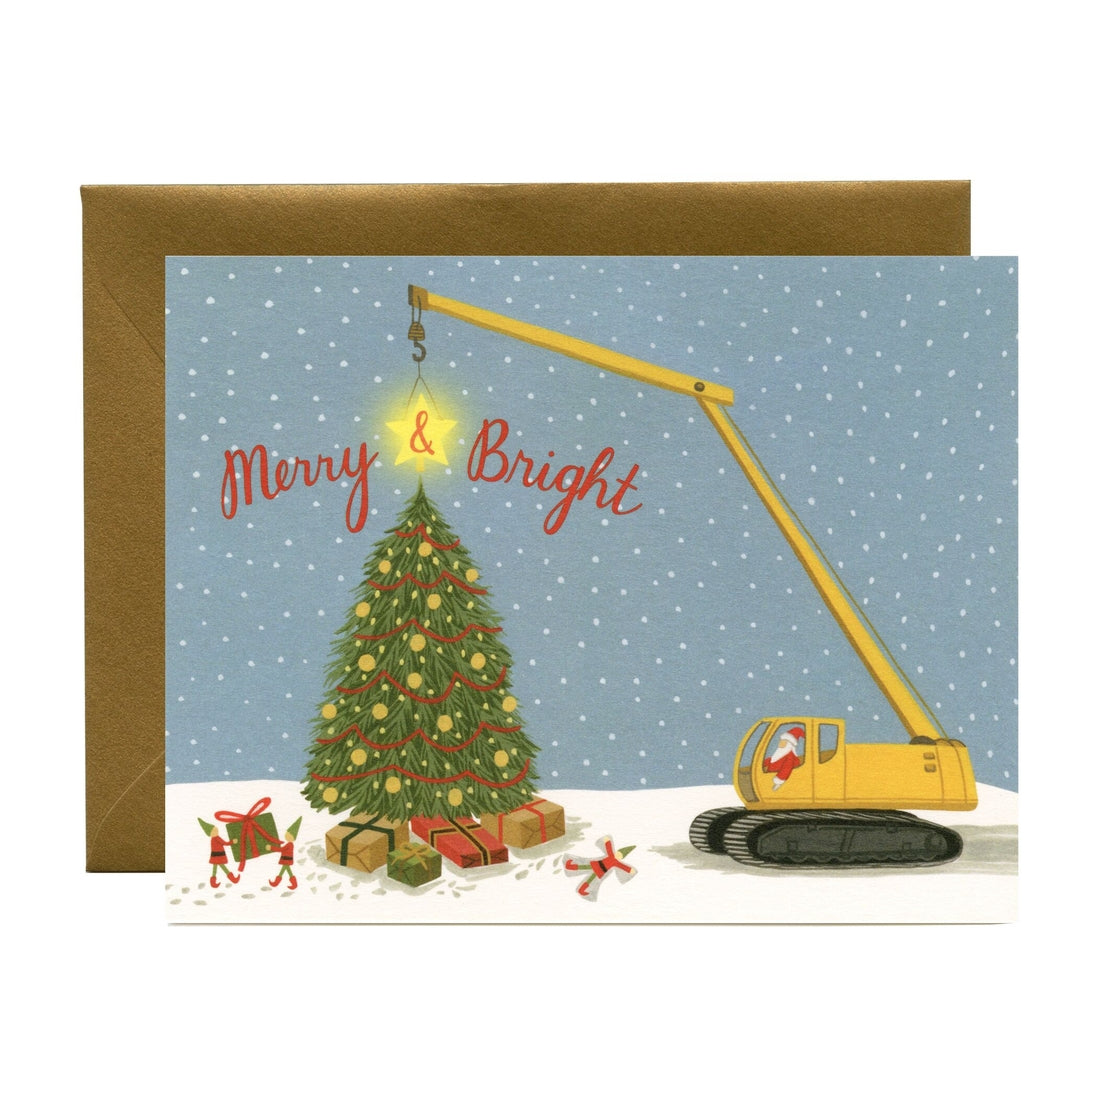 Construction Santa Cards - Boxed Set